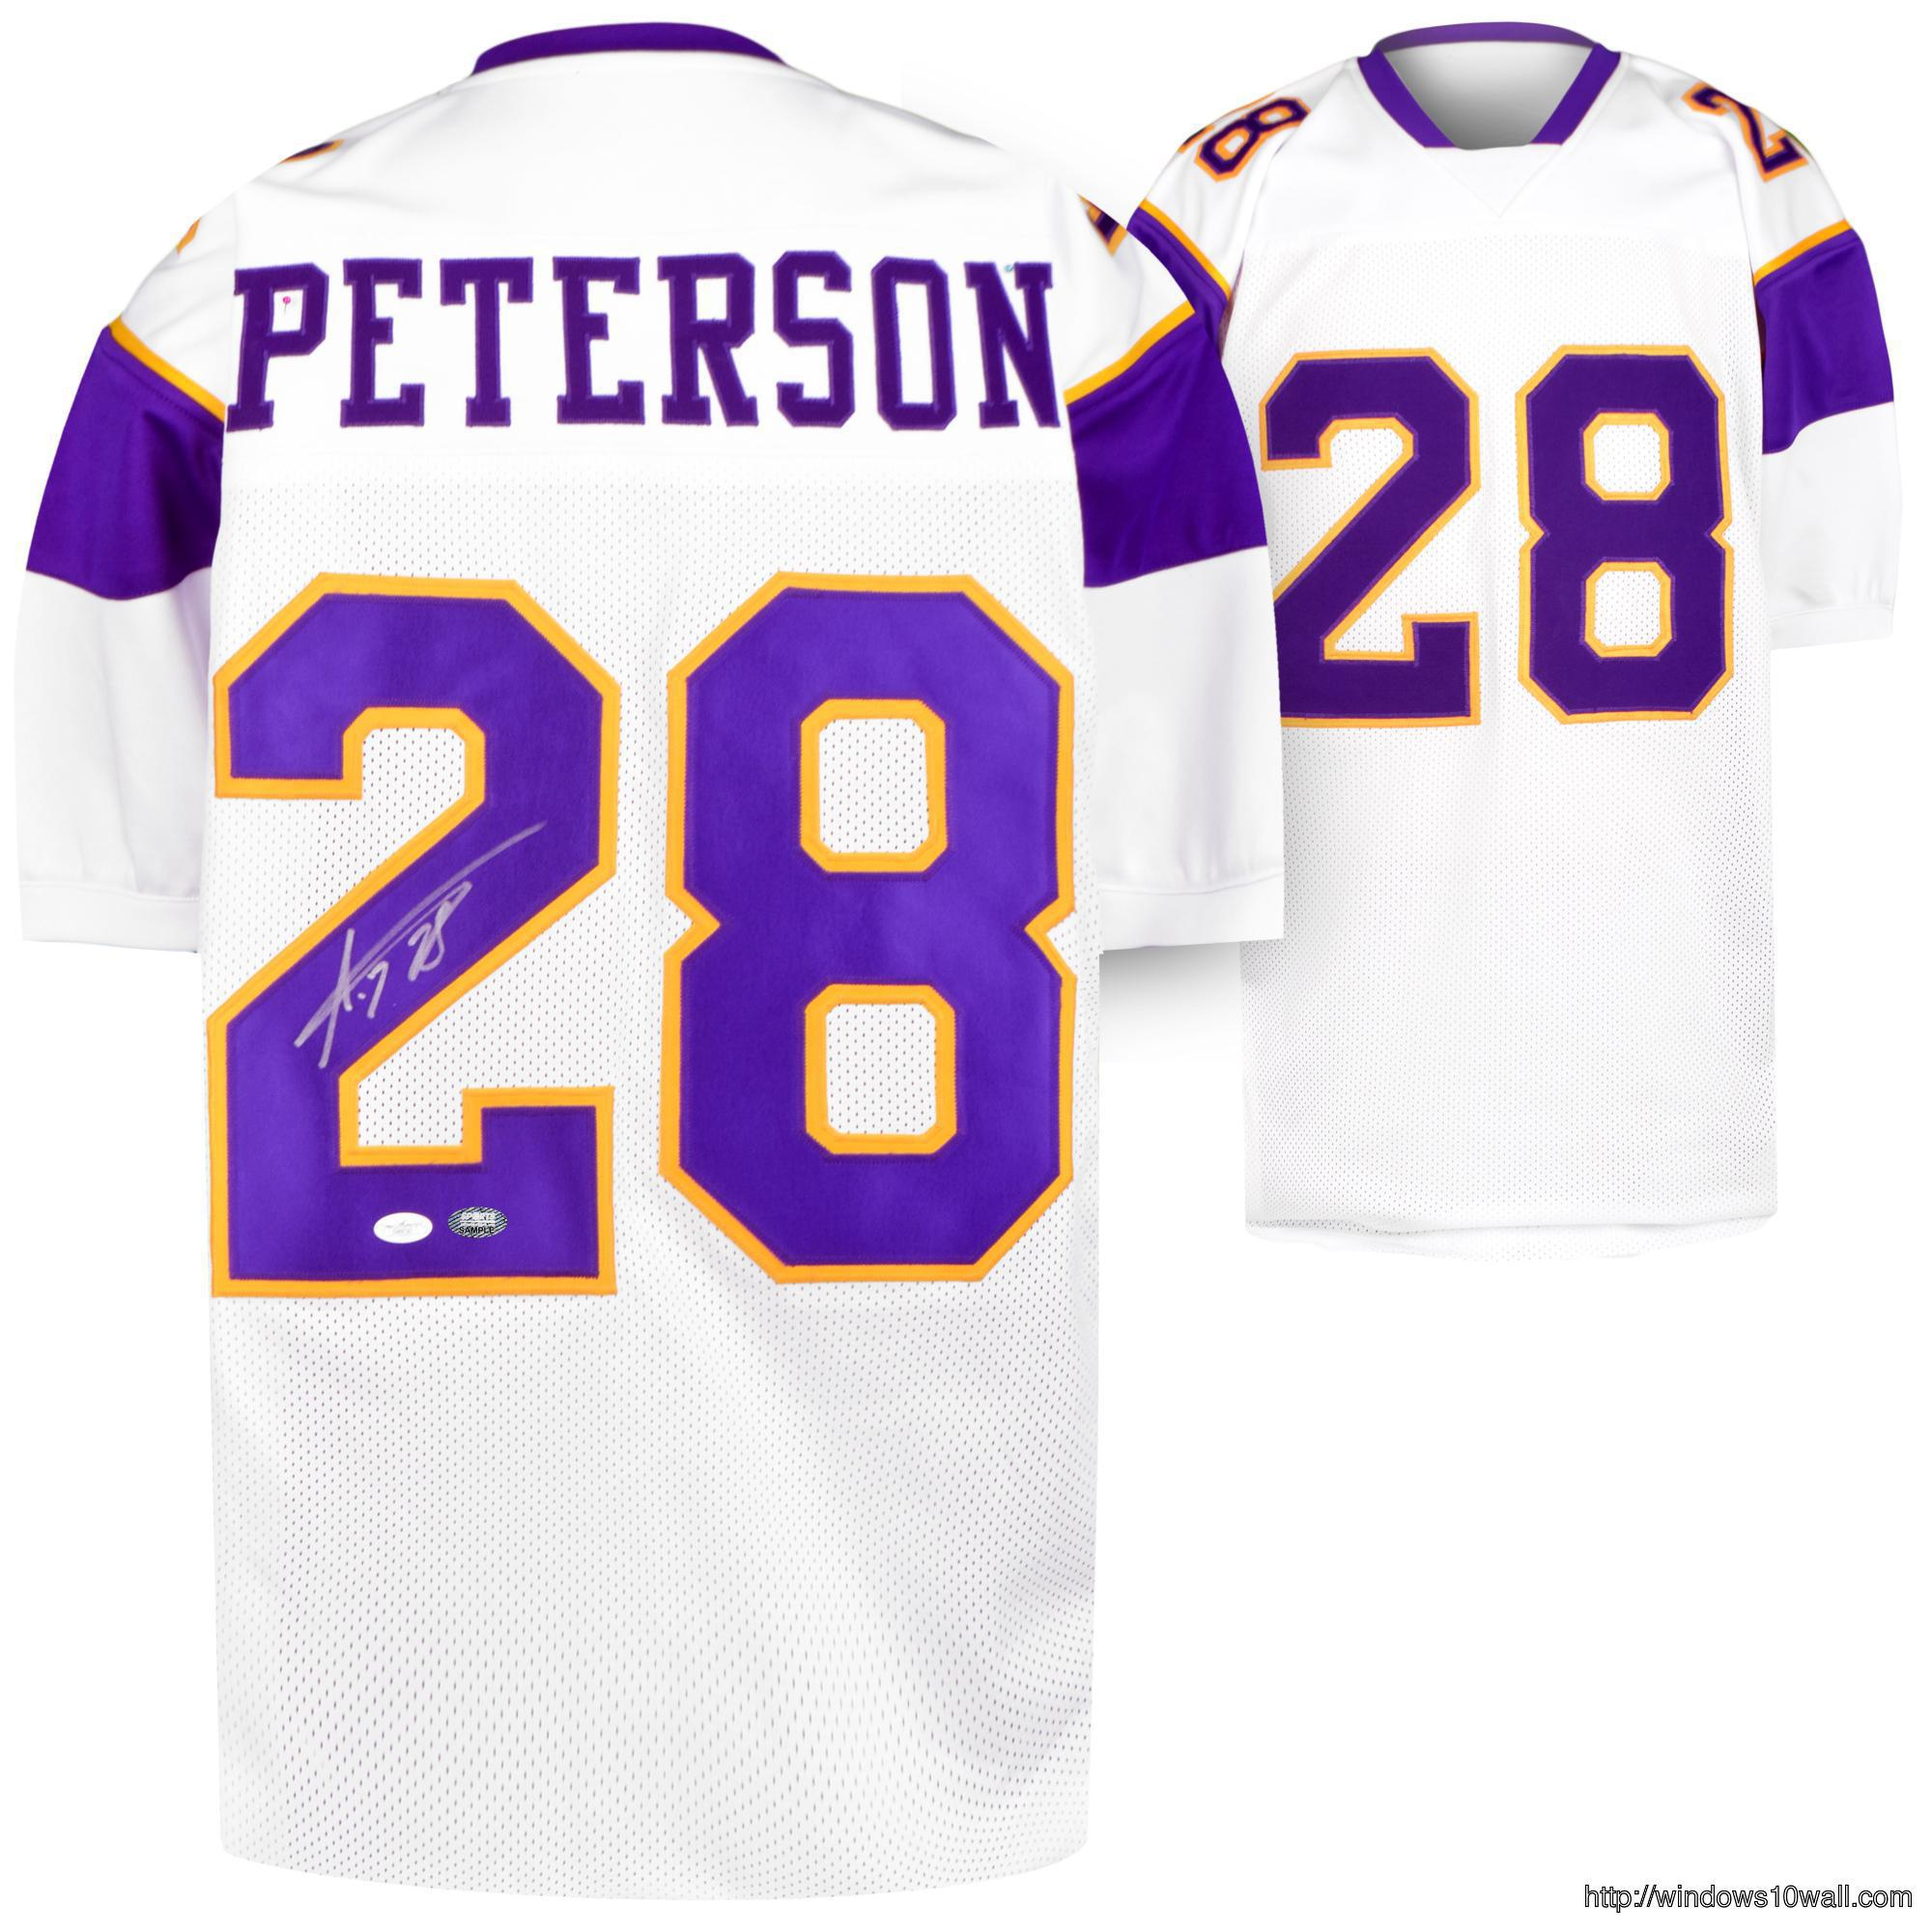 adrian-peterson-autographed-jersey